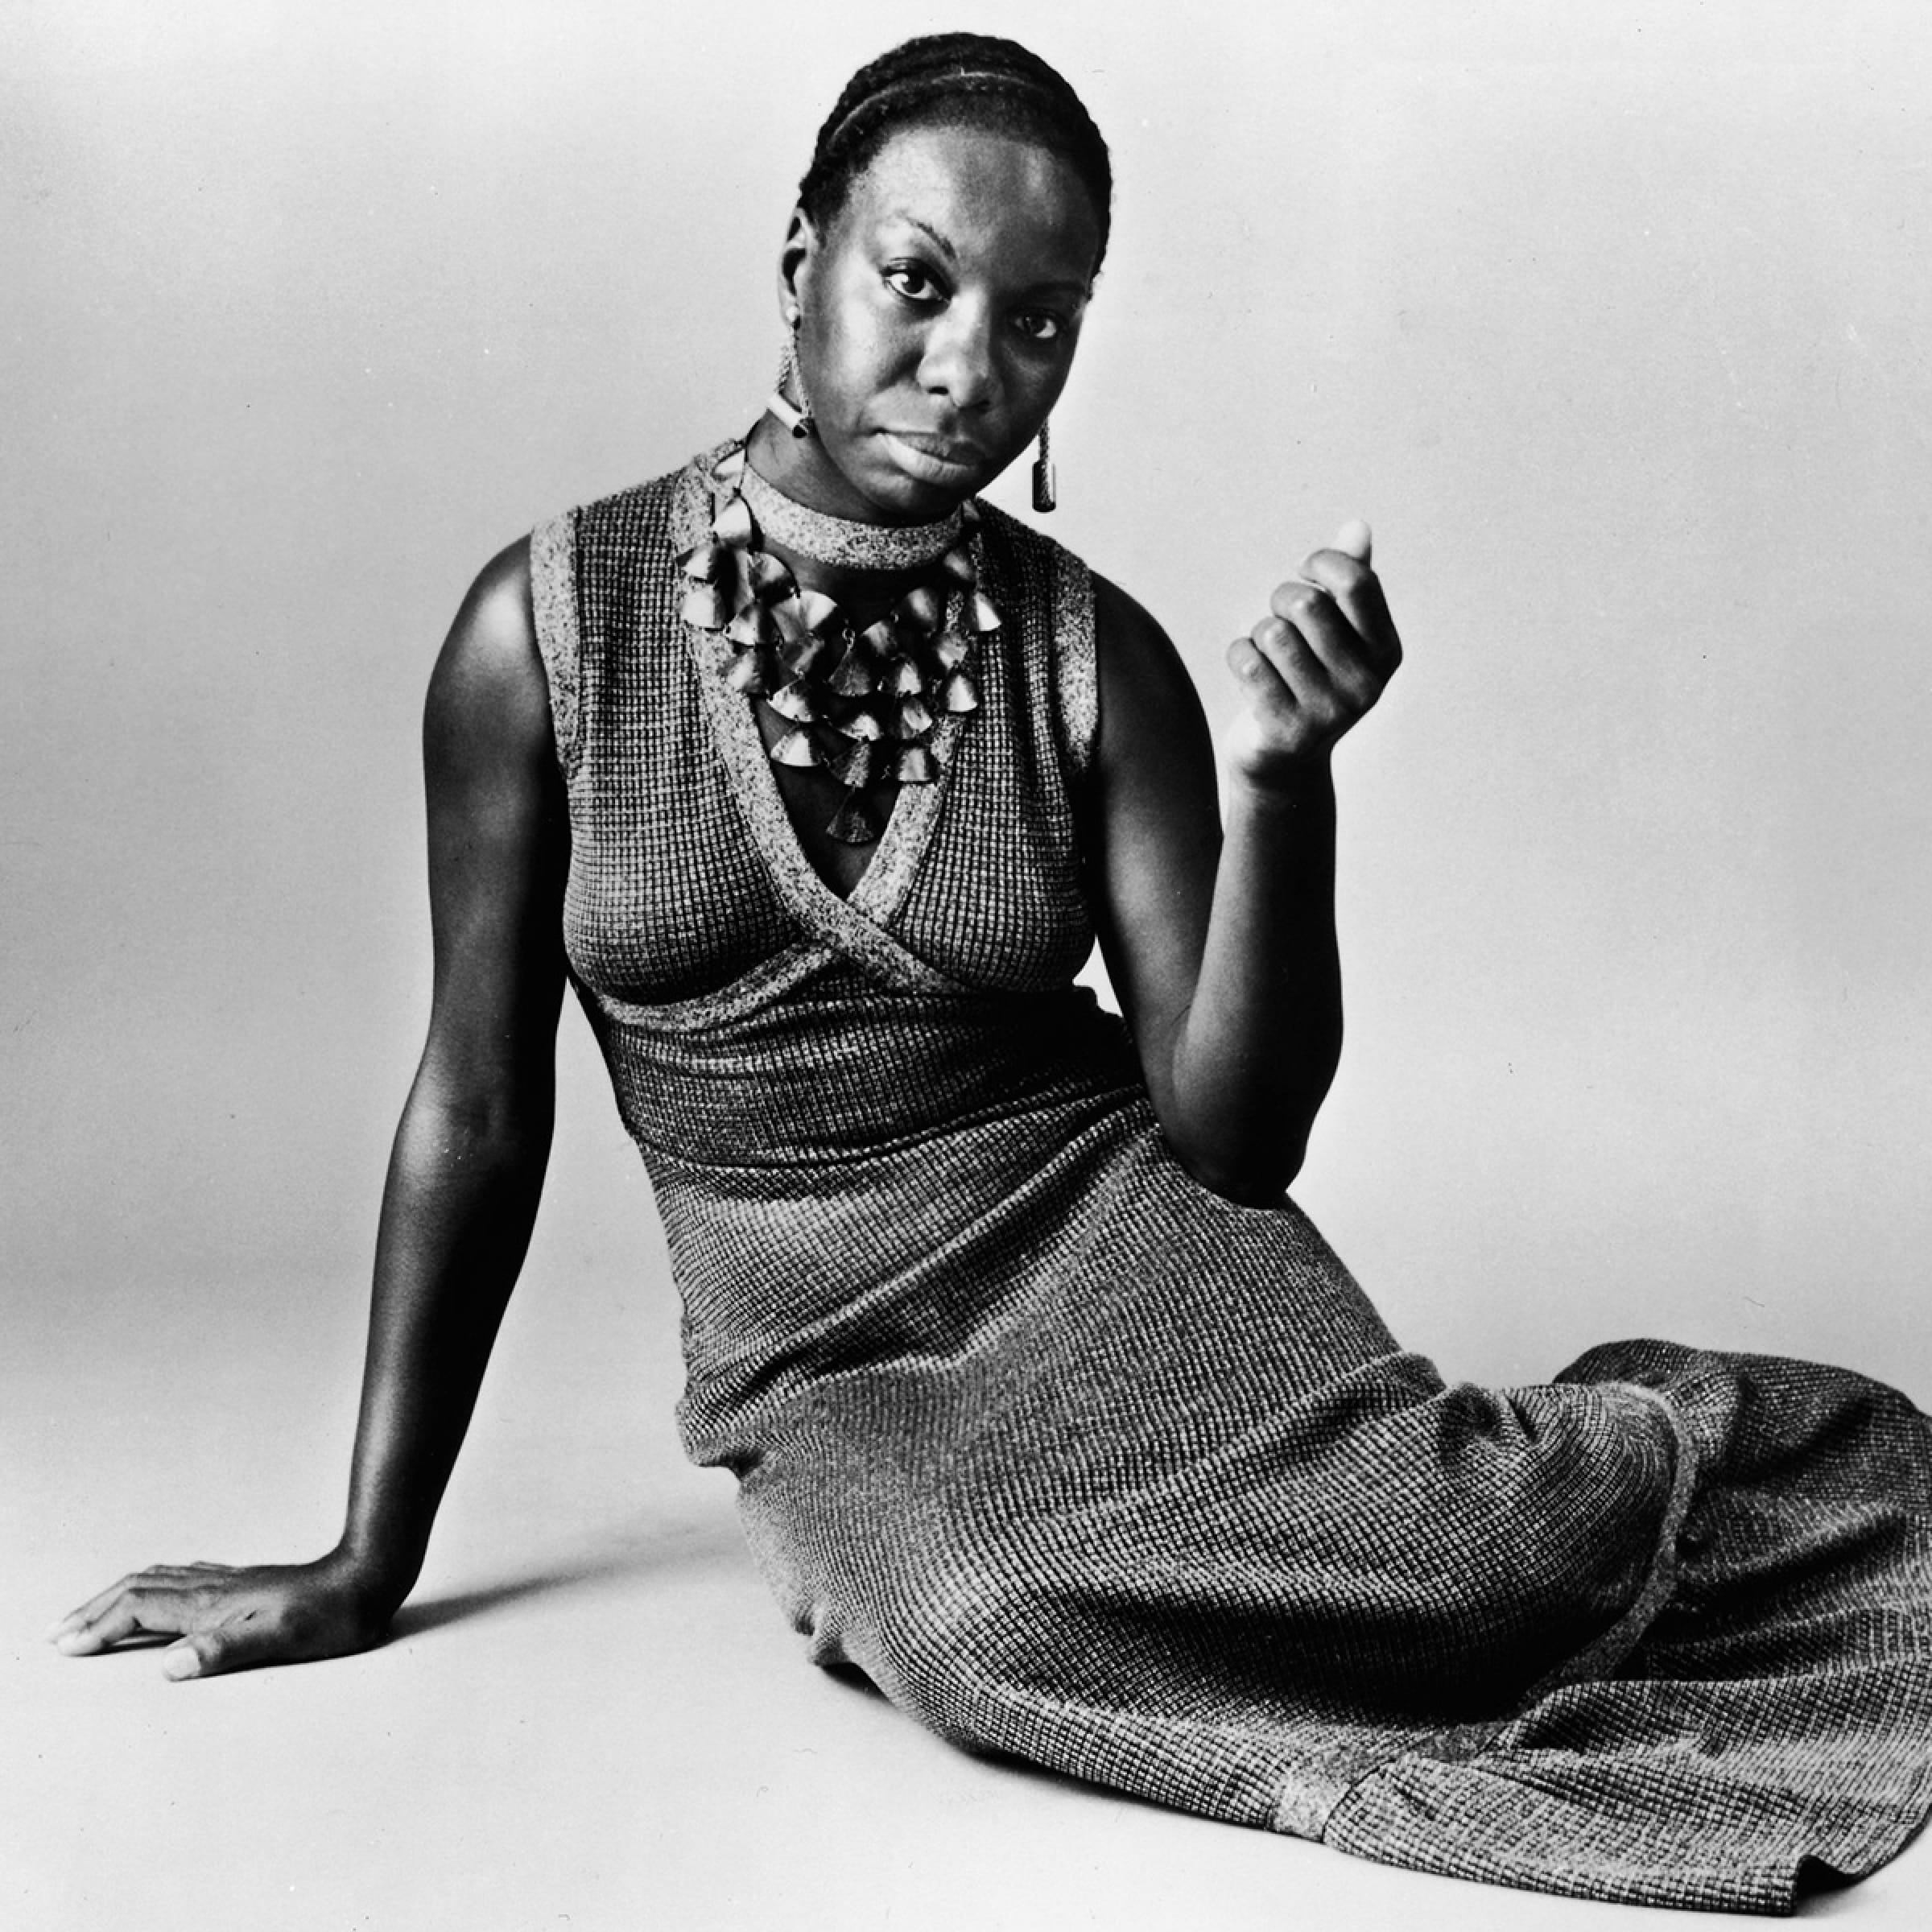 This studio portrait shows American pianist and jazz singer Nina Simone reclining on the floor circa 1968. She's wearing a necklace with dangling tassels and a v-neck cut long dress.